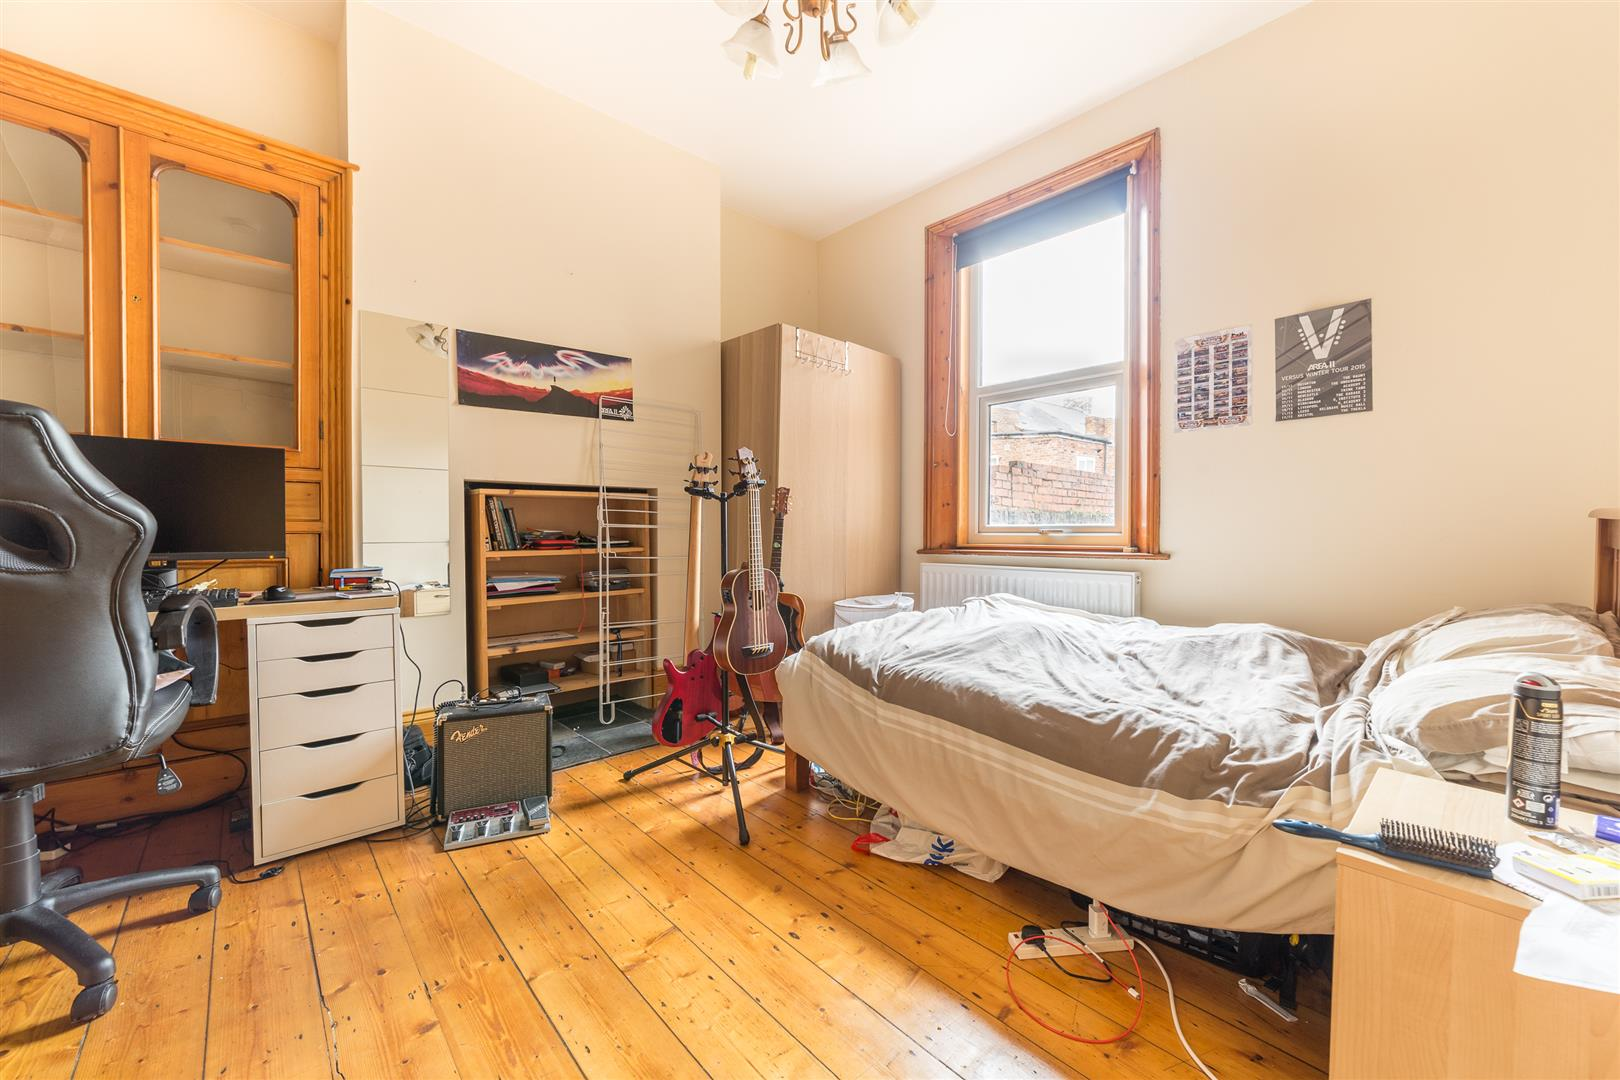 5 bed terraced house to rent in Newcastle Upon Tyne, NE4 5NL  - Property Image 9